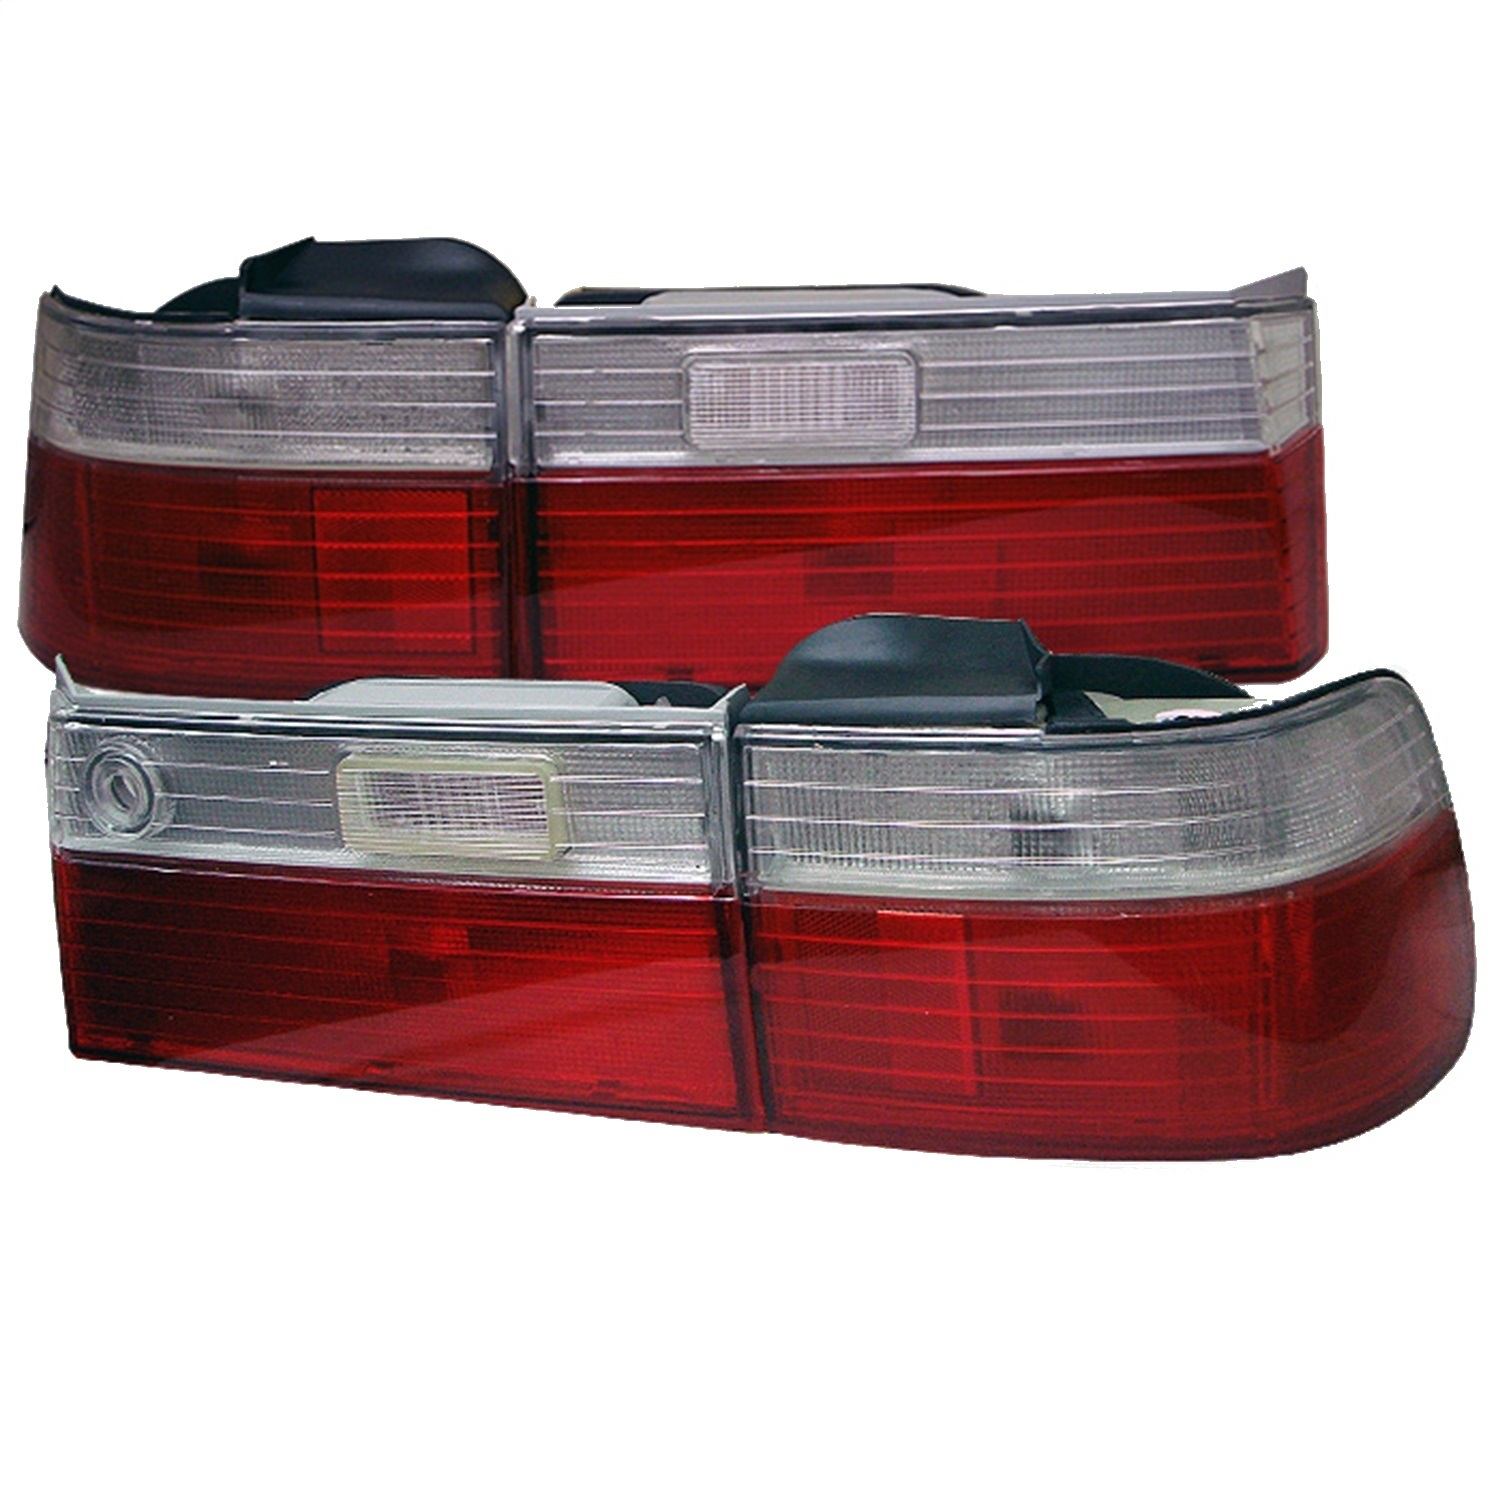 Spyder Auto 5004062 Euro Style Tail Lights Fits 90-91 Accord